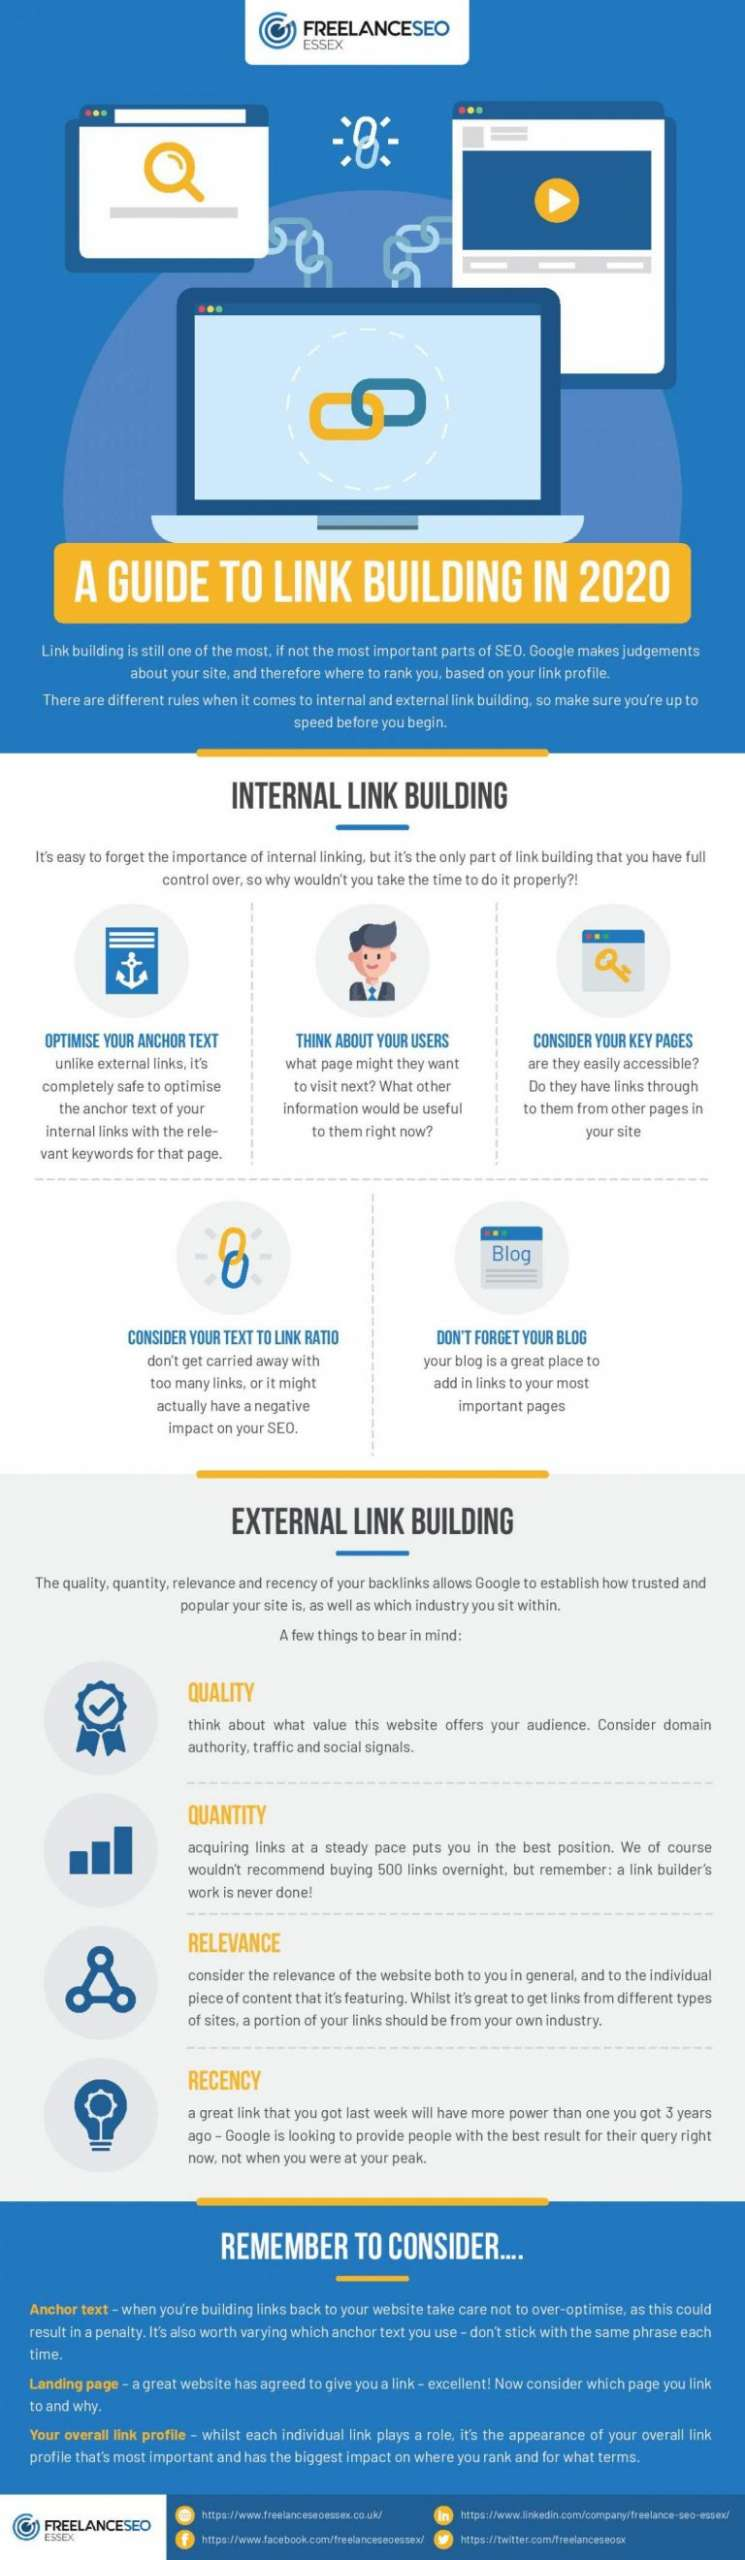 A-guide-to-link-building-in-2020-768x2640-1-scaled